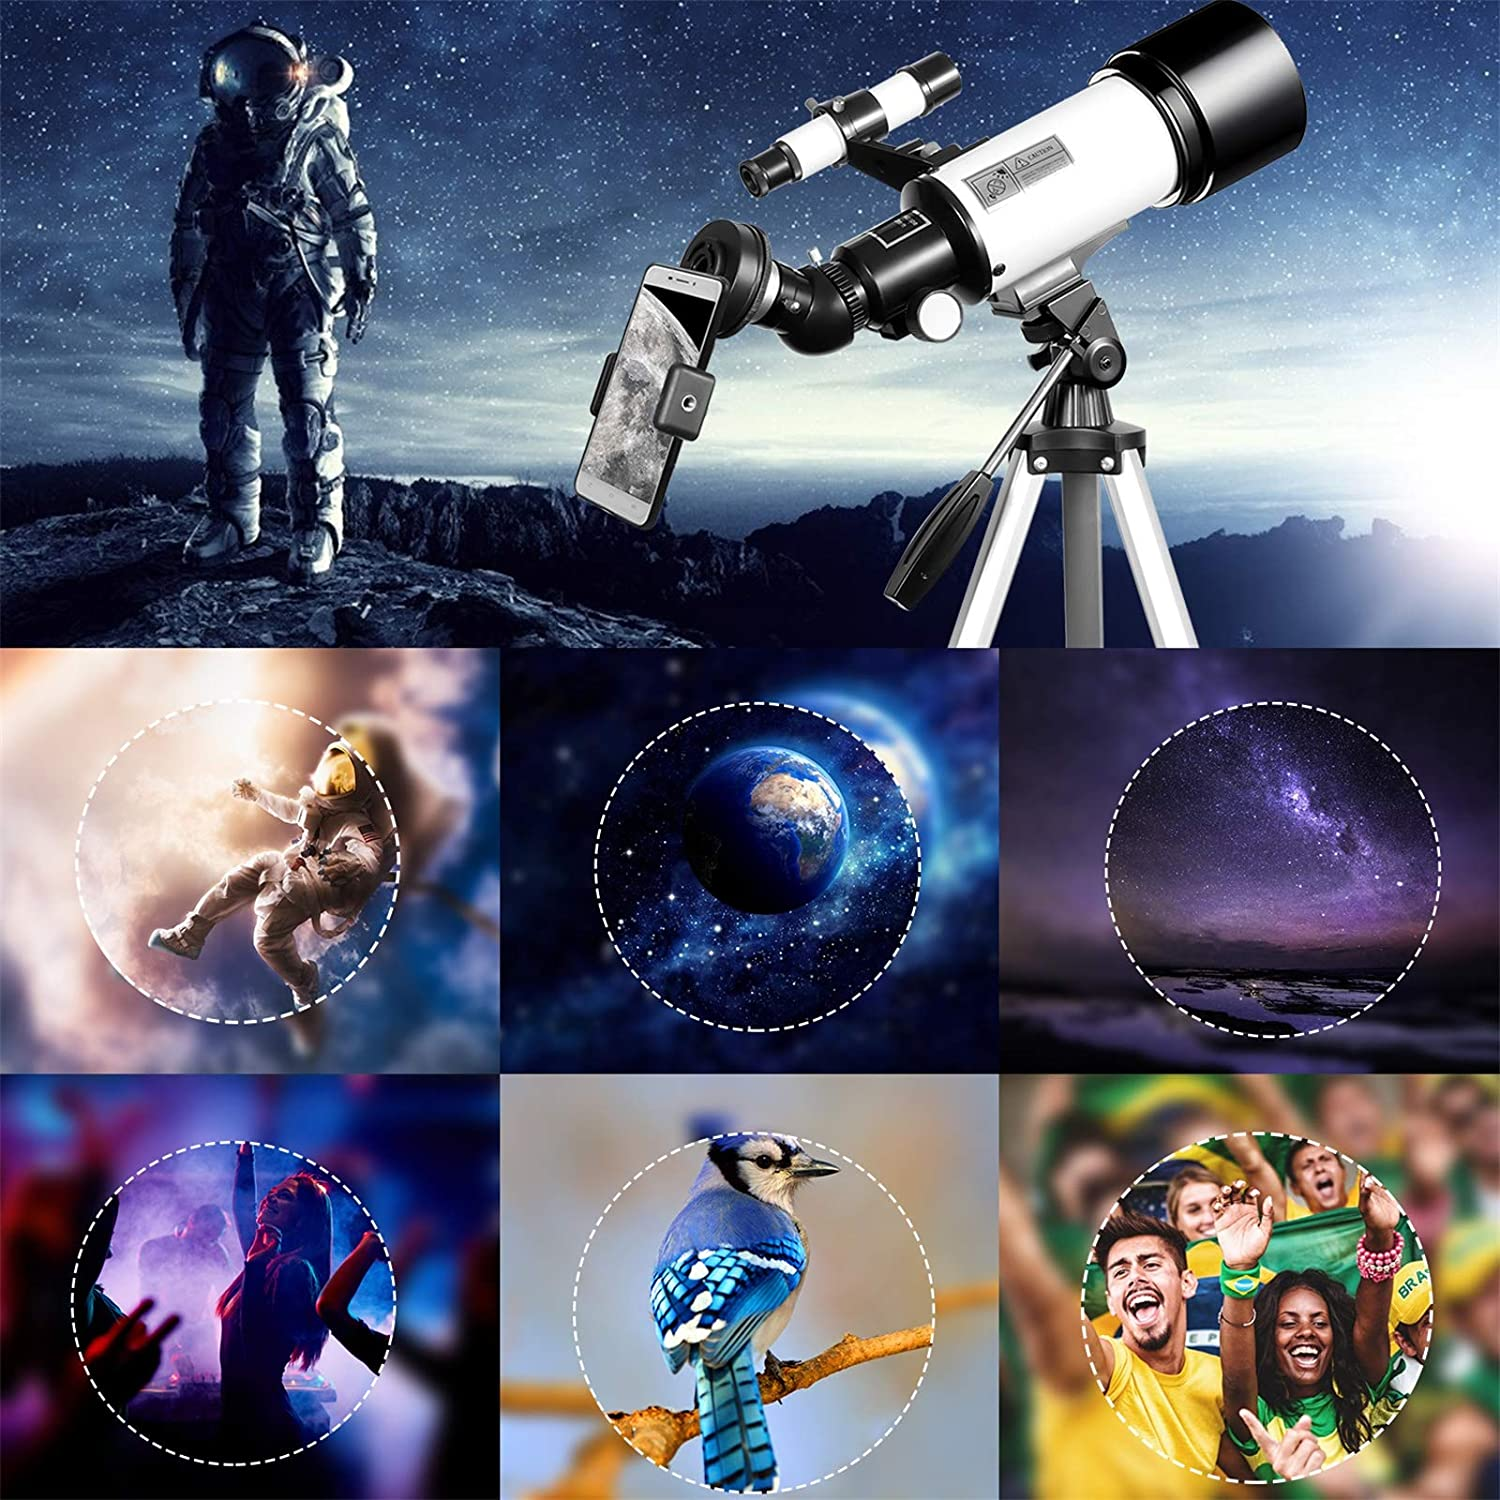 Telescopes for Adults Astronomy,70mm Aperture 400mm Mount,Telescope for Kids Beginners,Fully Multi-Coated Optics,Astronomy Refractor Telescope Portable Telescope with Tripod,Backpack,Phone Adapter